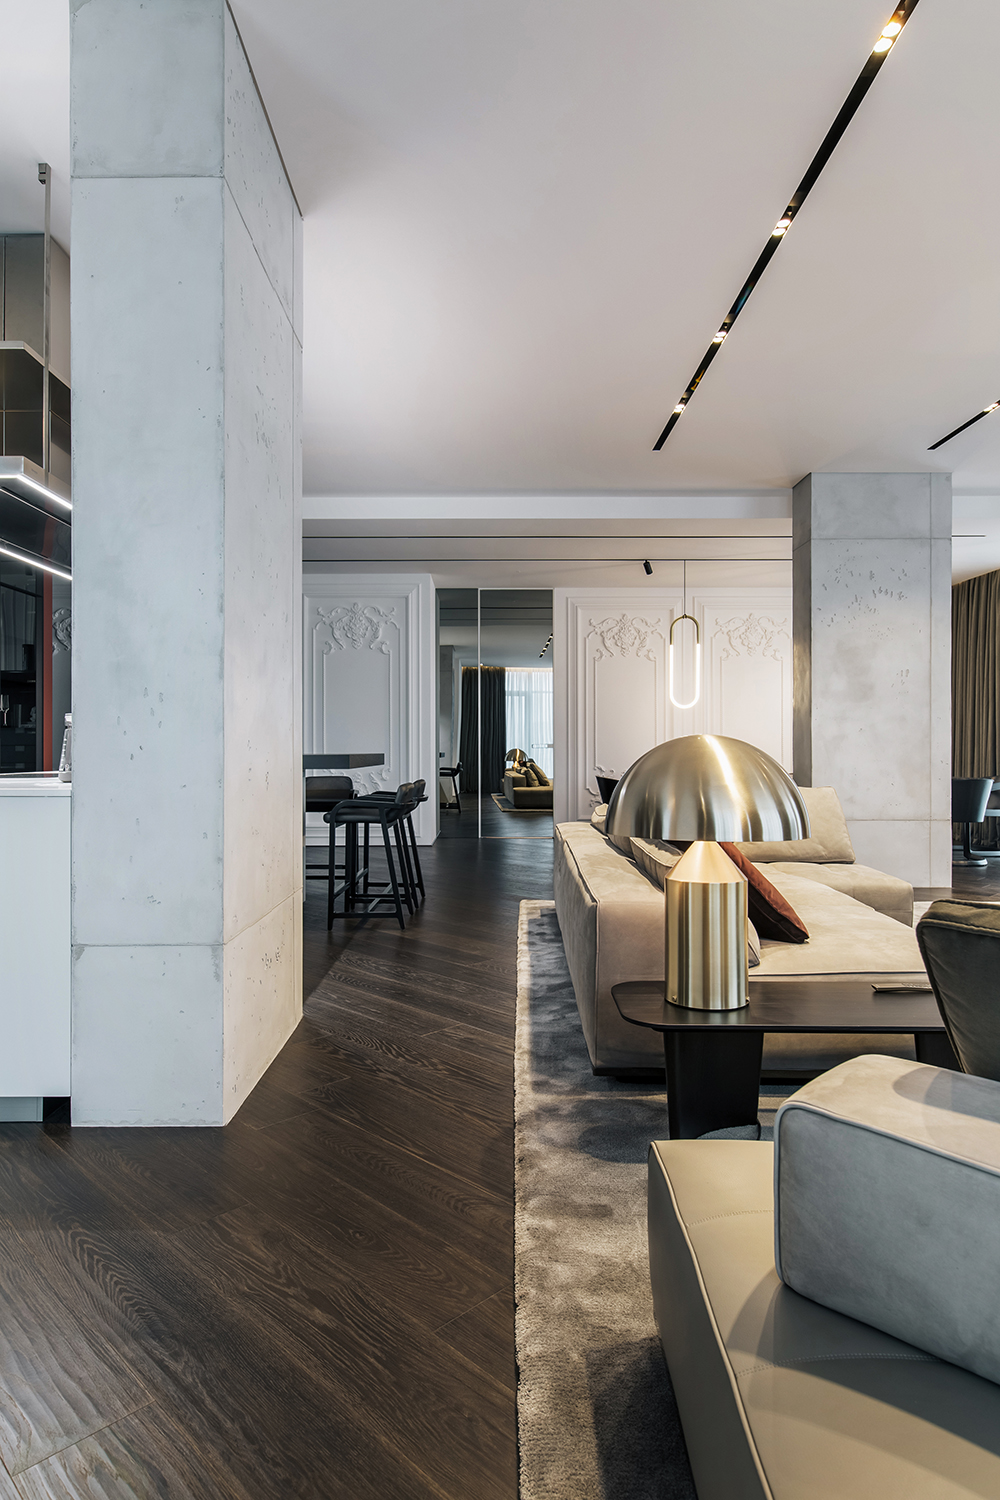 The living area dining room and the open kitchen form together the social zone and